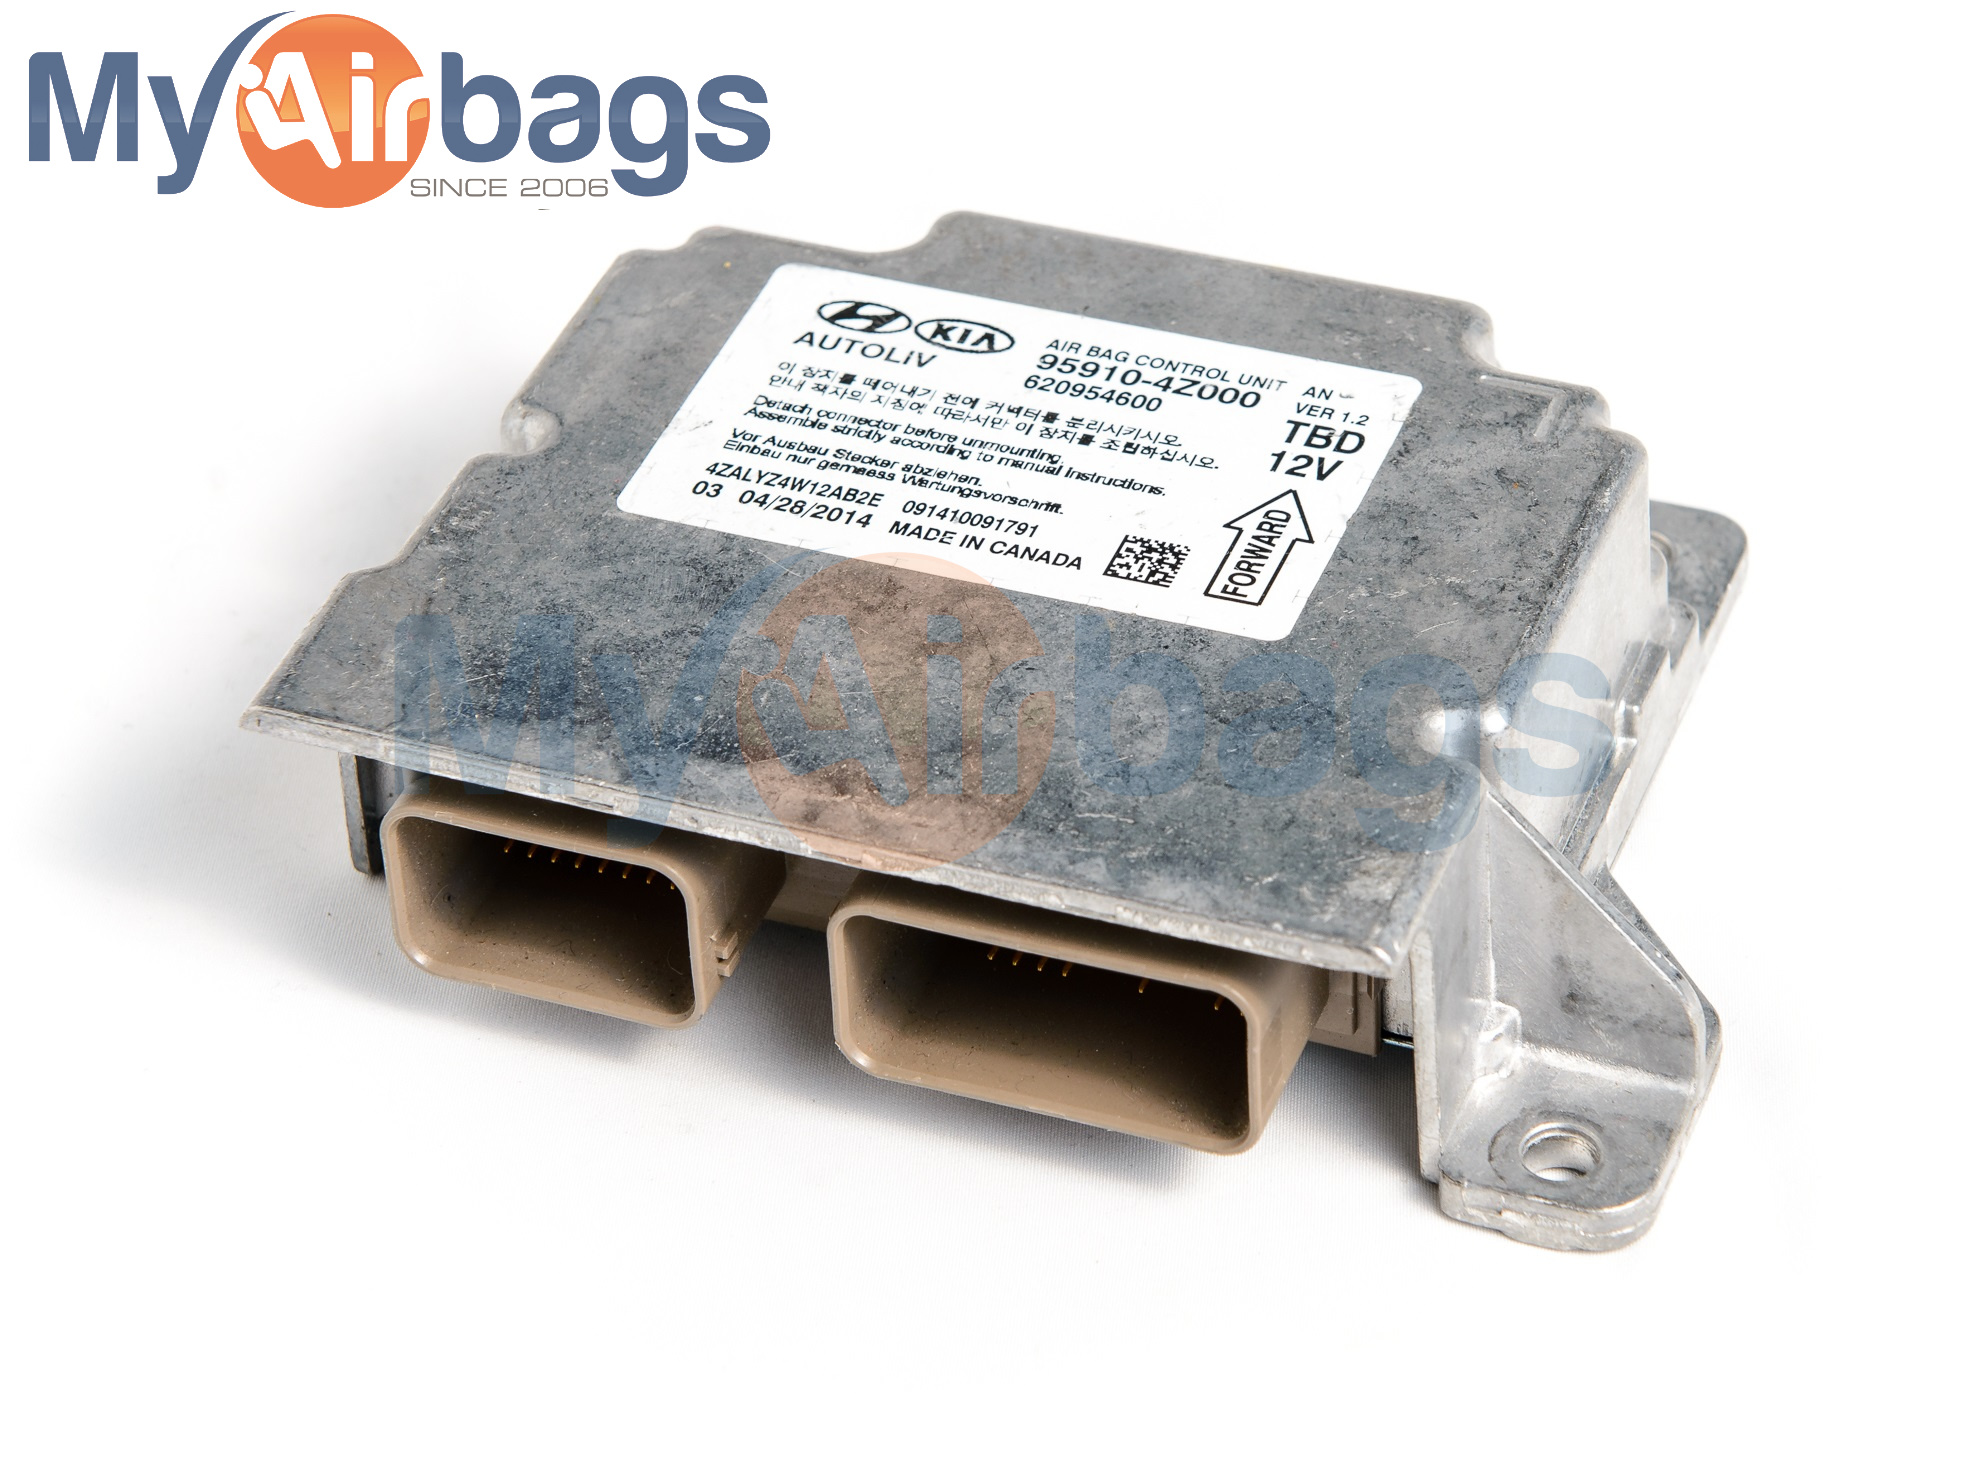 Myairbags Q Amp A What Does An Airbag Control Module Look